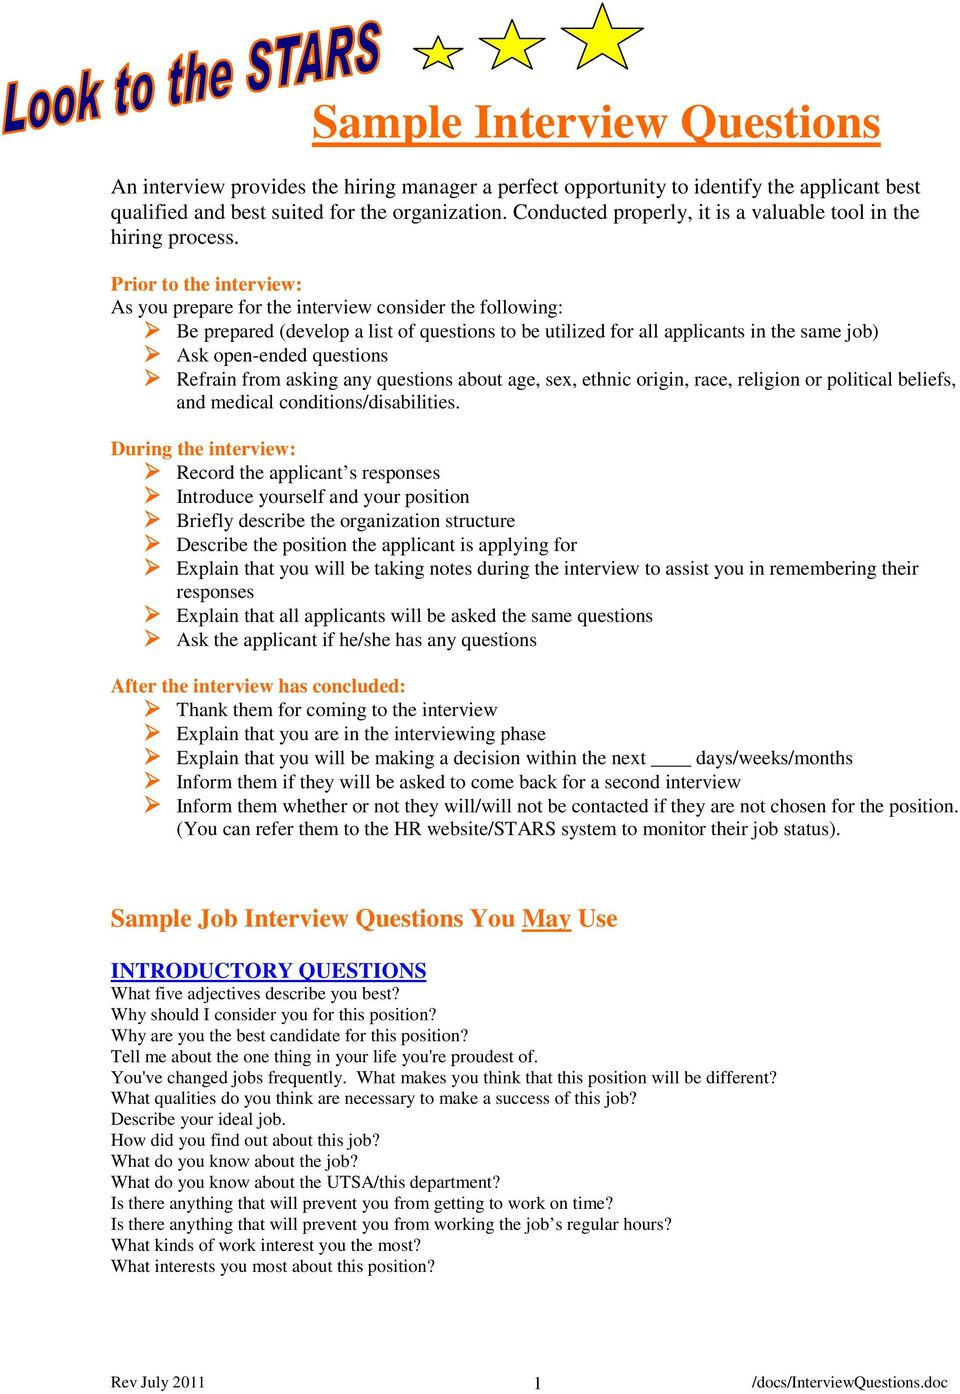 sample interview questions pdf